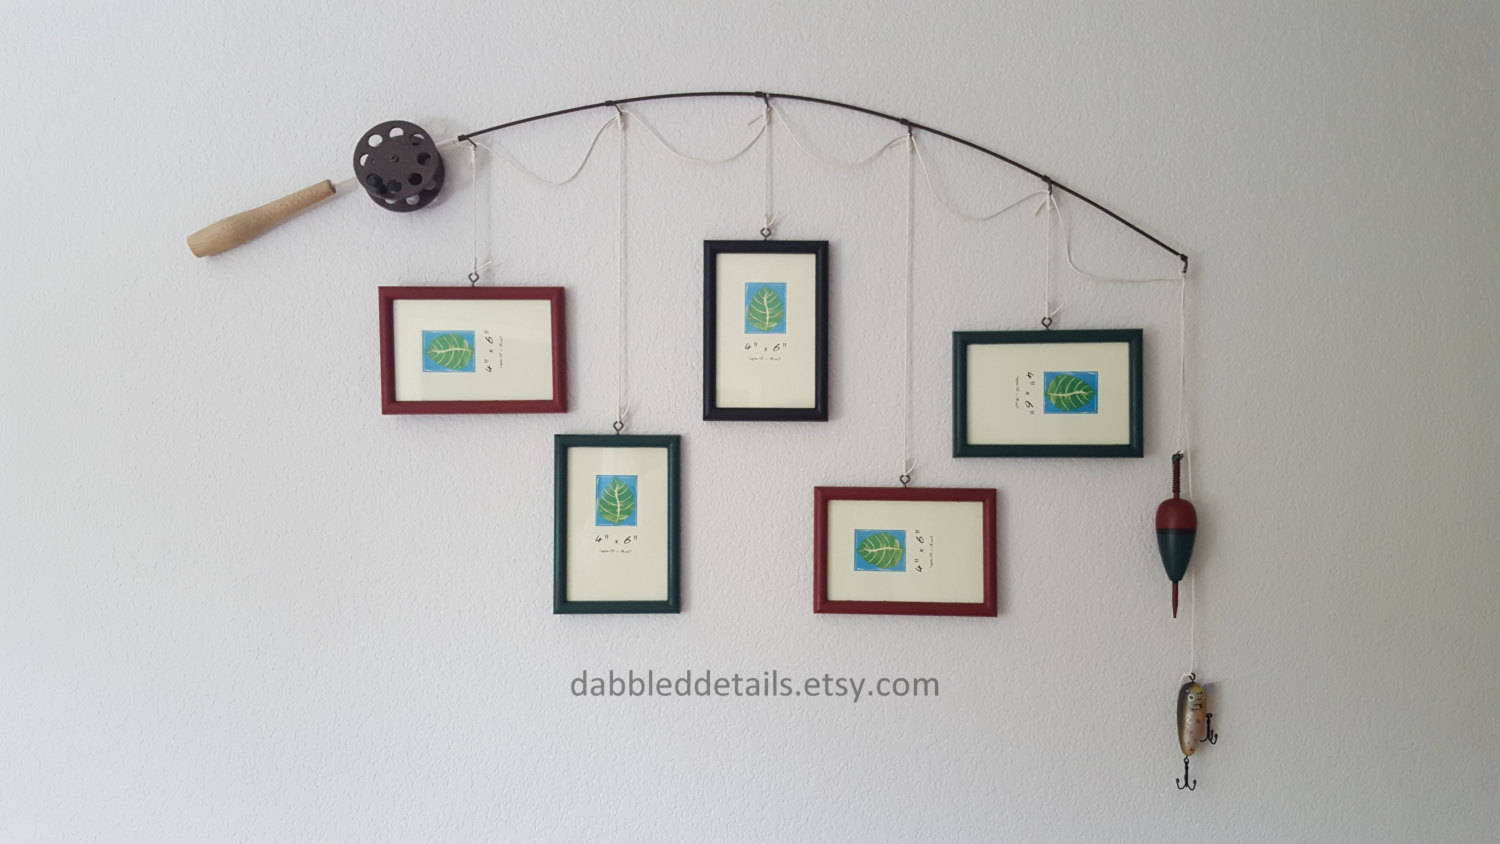 Fishing pole frame on wall with pictures